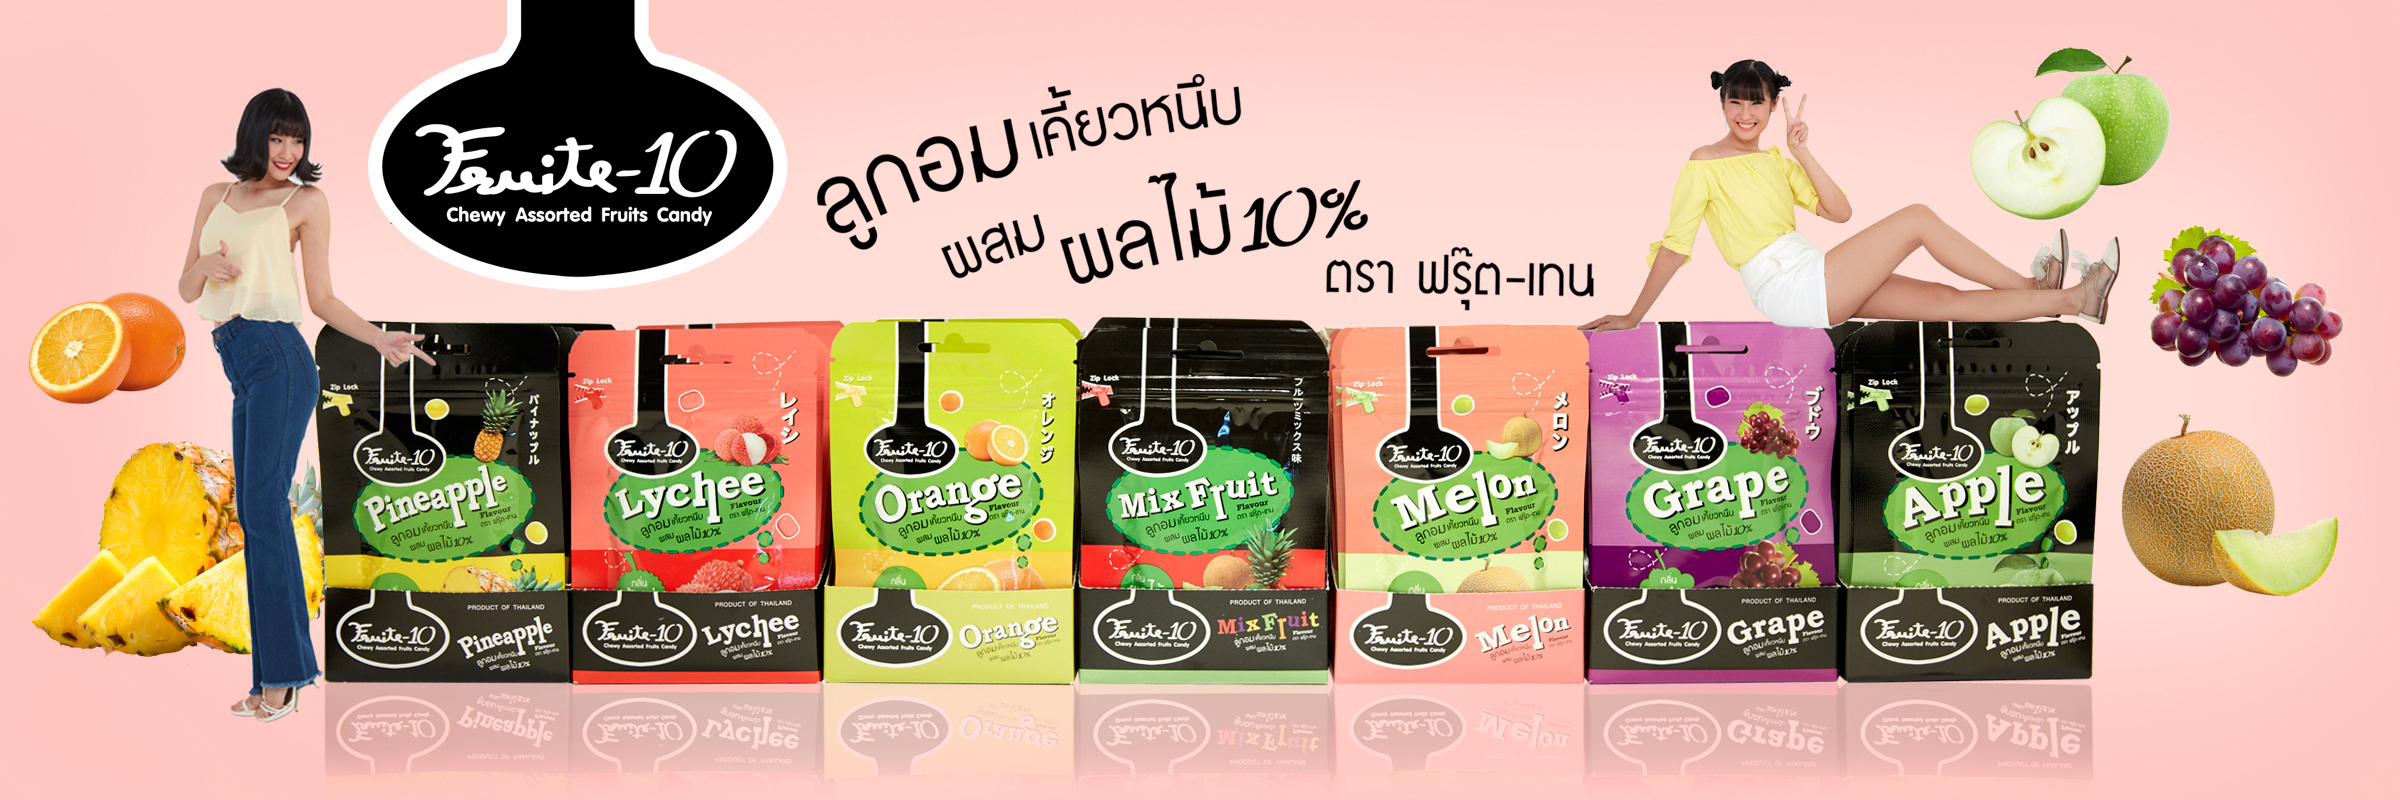 Fruite-10 Mixed Flavour